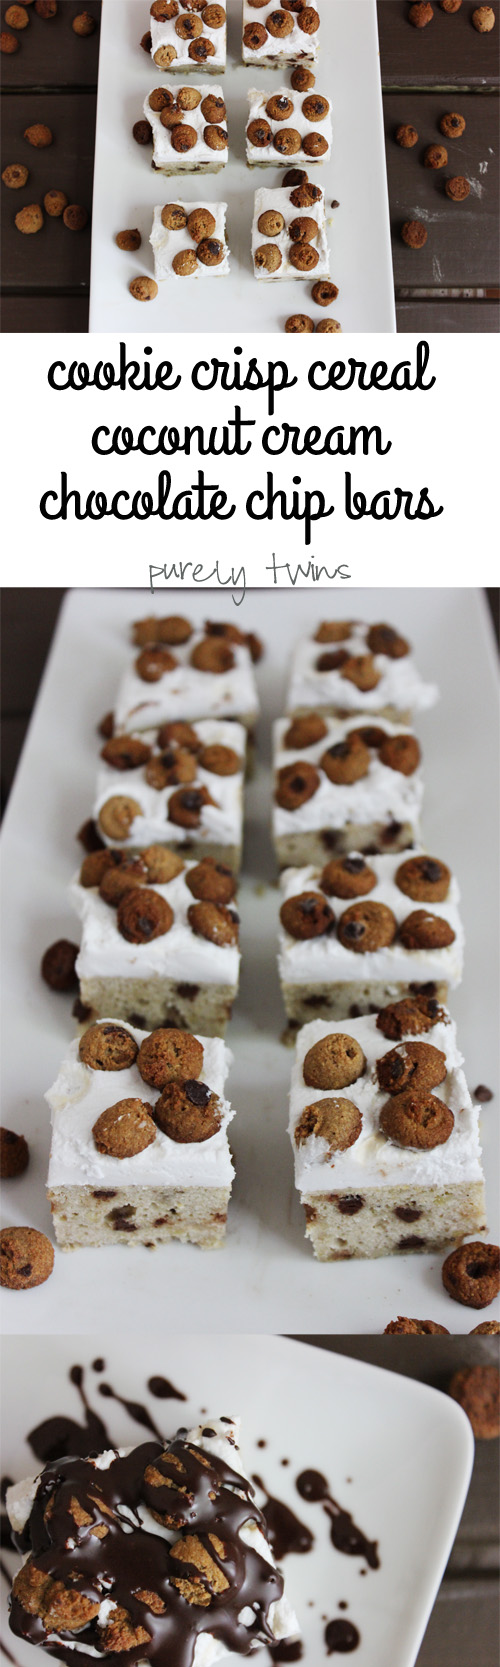 Grain-free low sugar chocolate chip plantain bars with dairy free coconut whipped cream topped with homemade gluten-free vegan paleo cookie crisp cereal | purelytwins.com